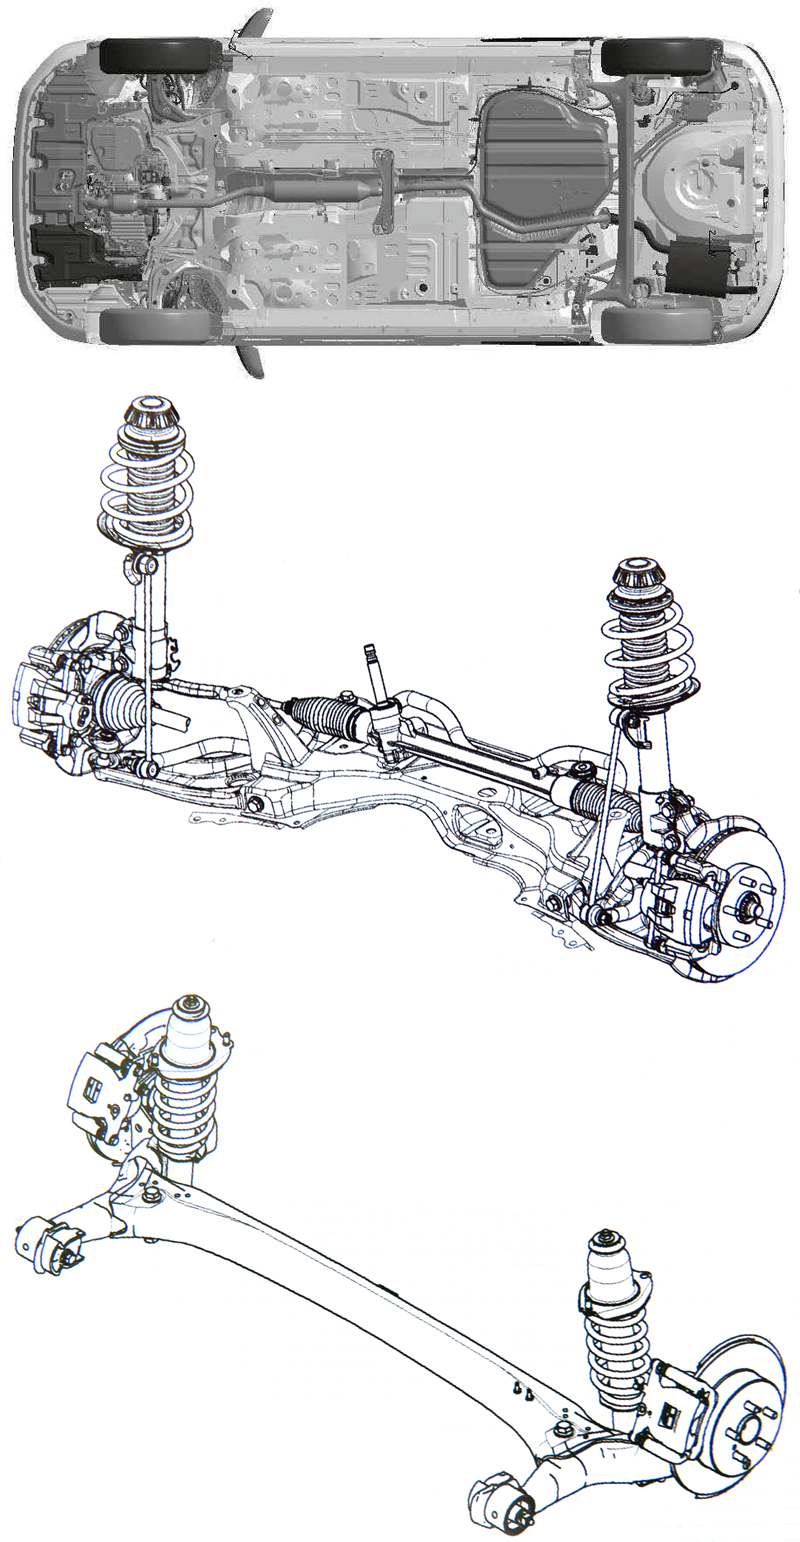 2016_11_Toyota_Sienta_Engine_06_Suspension